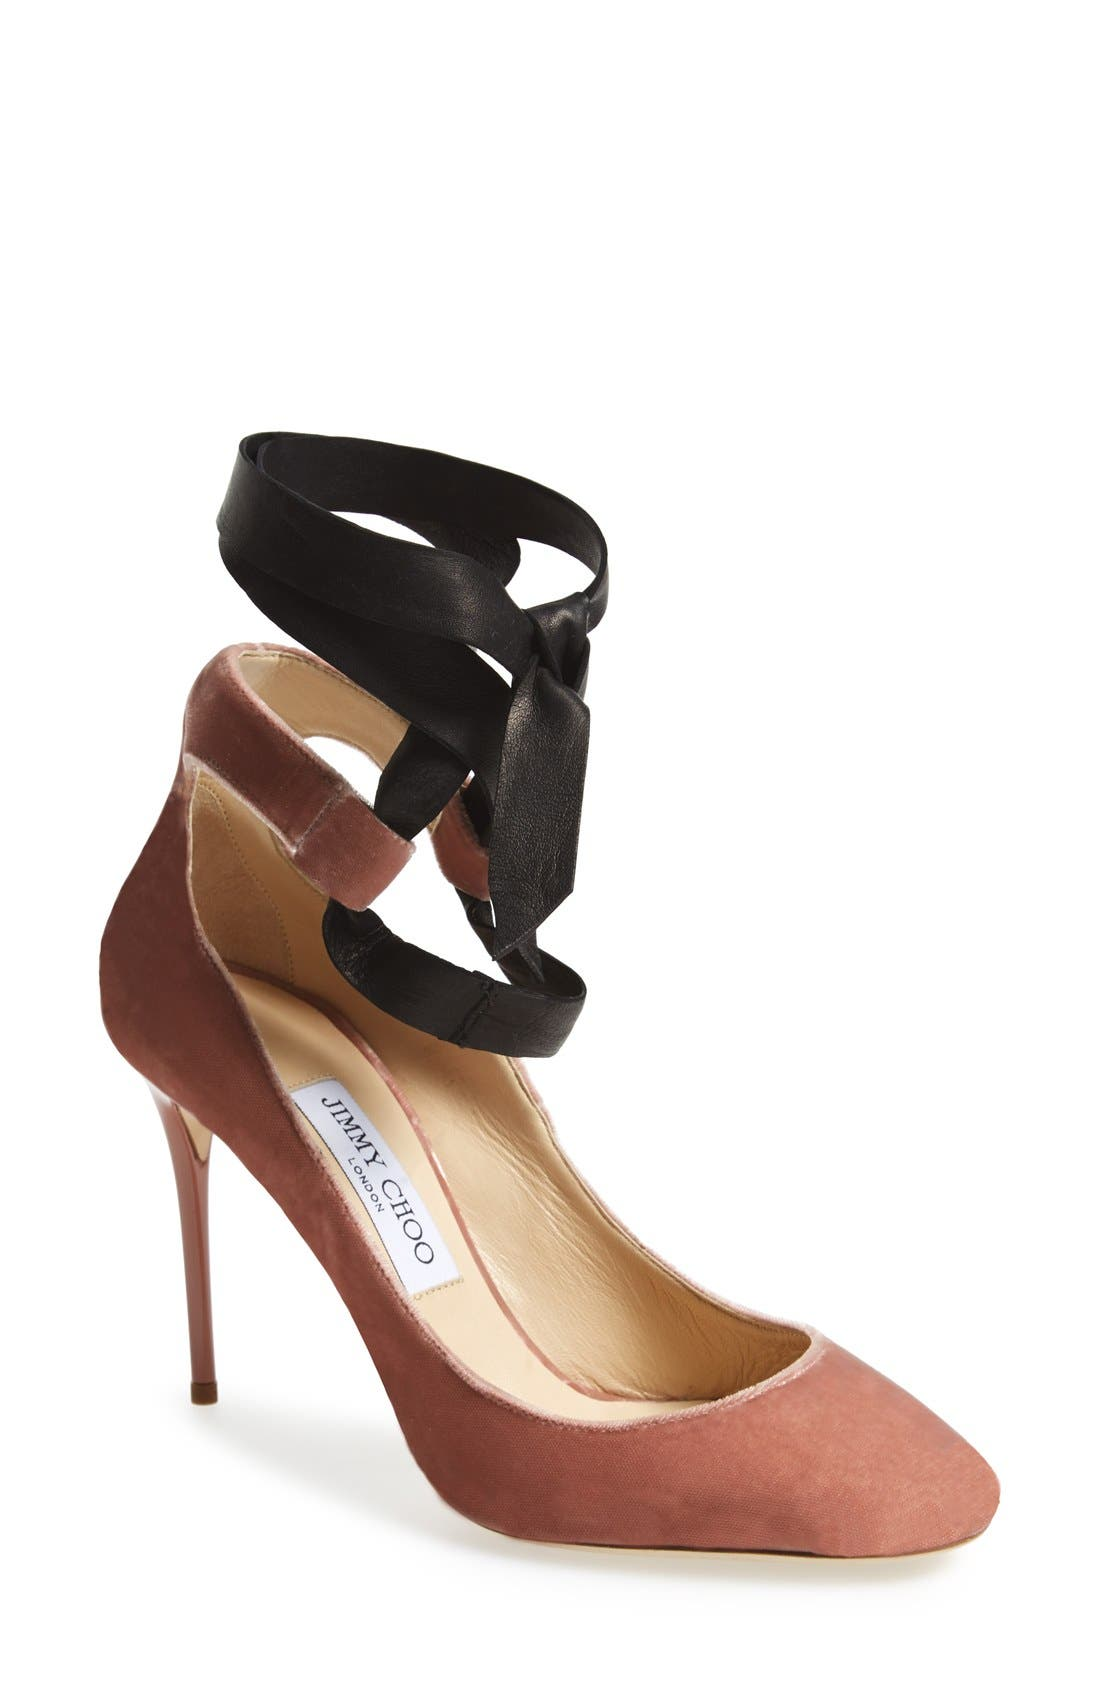 'Rosana' Pump,                             Main thumbnail 1, color,                             250